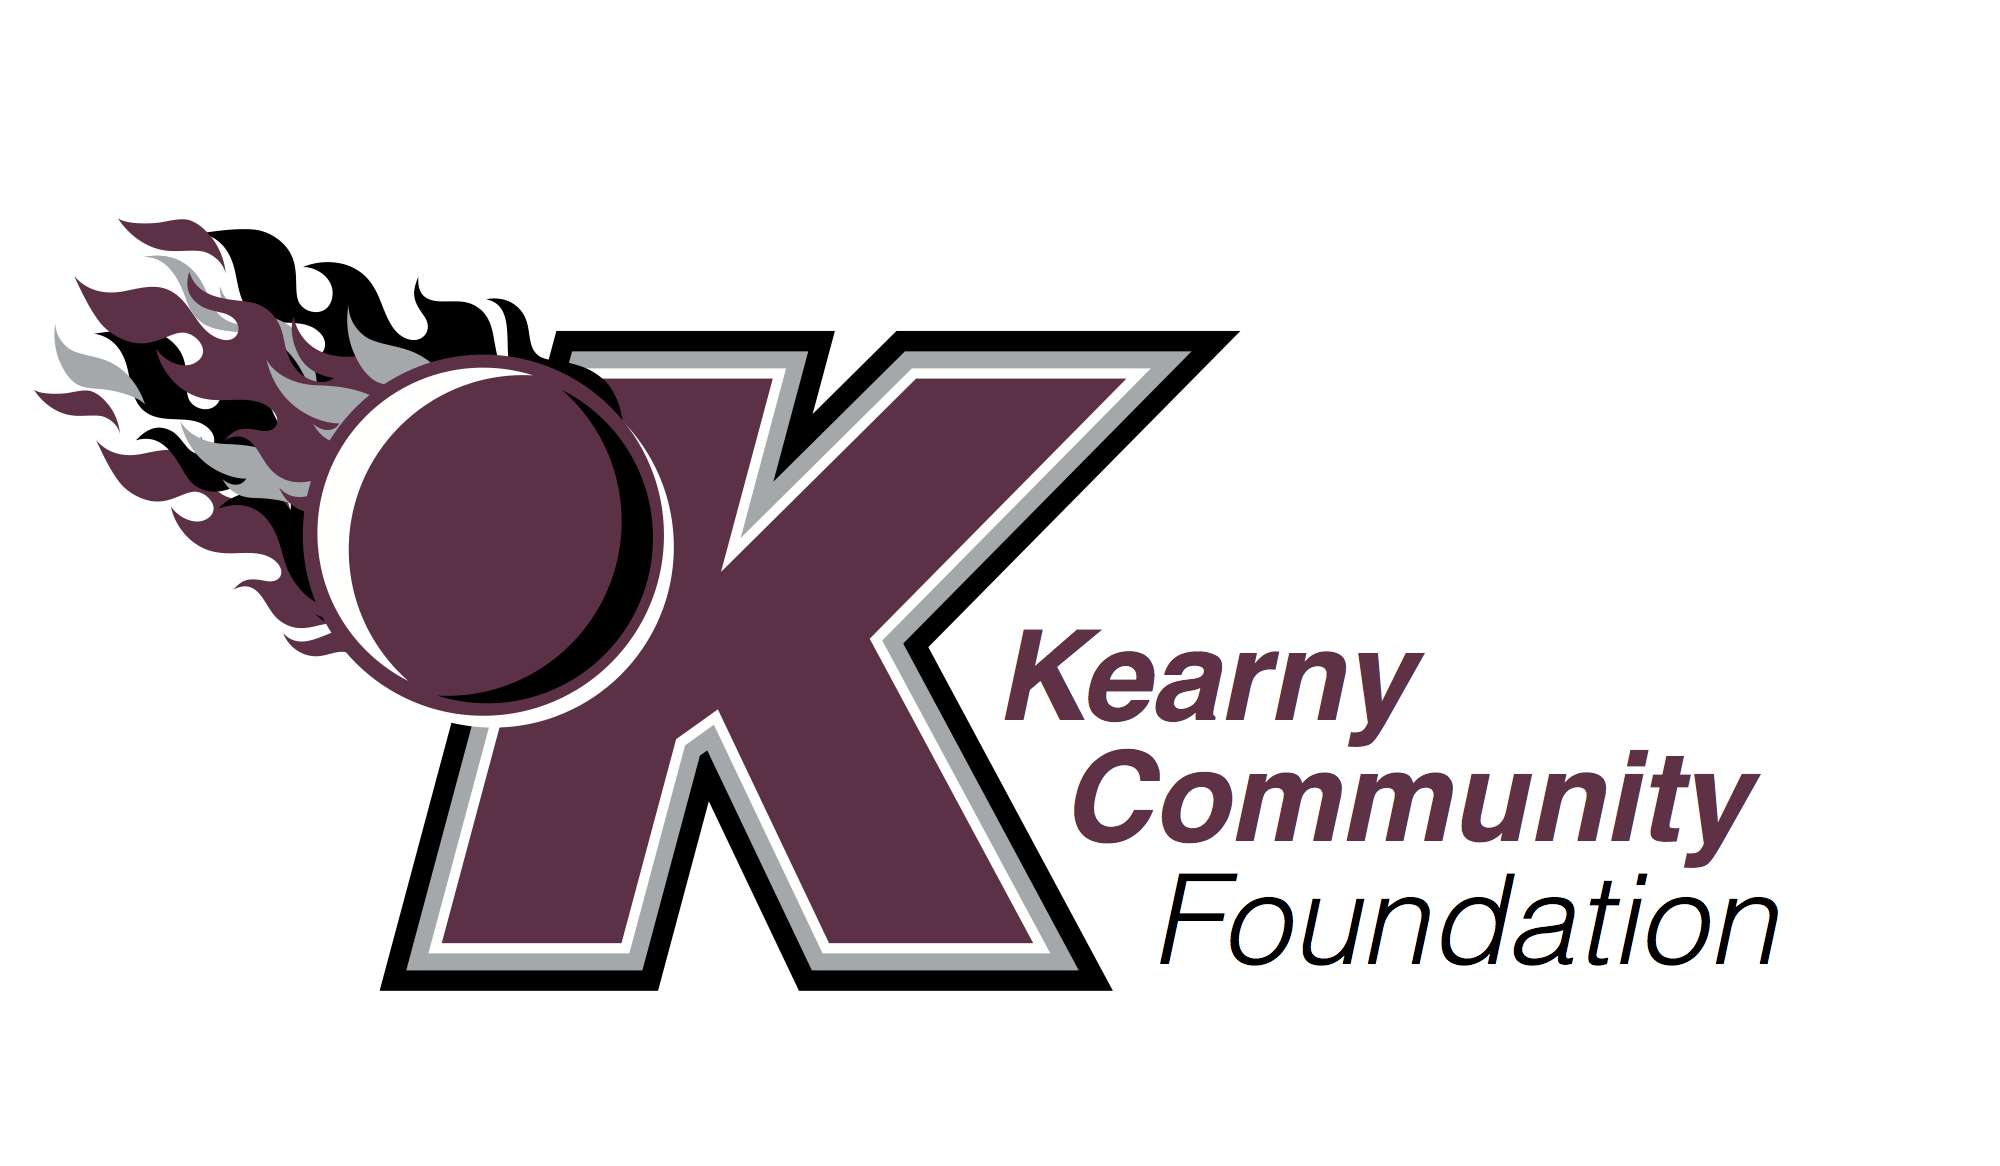 Kearny Community Foundation